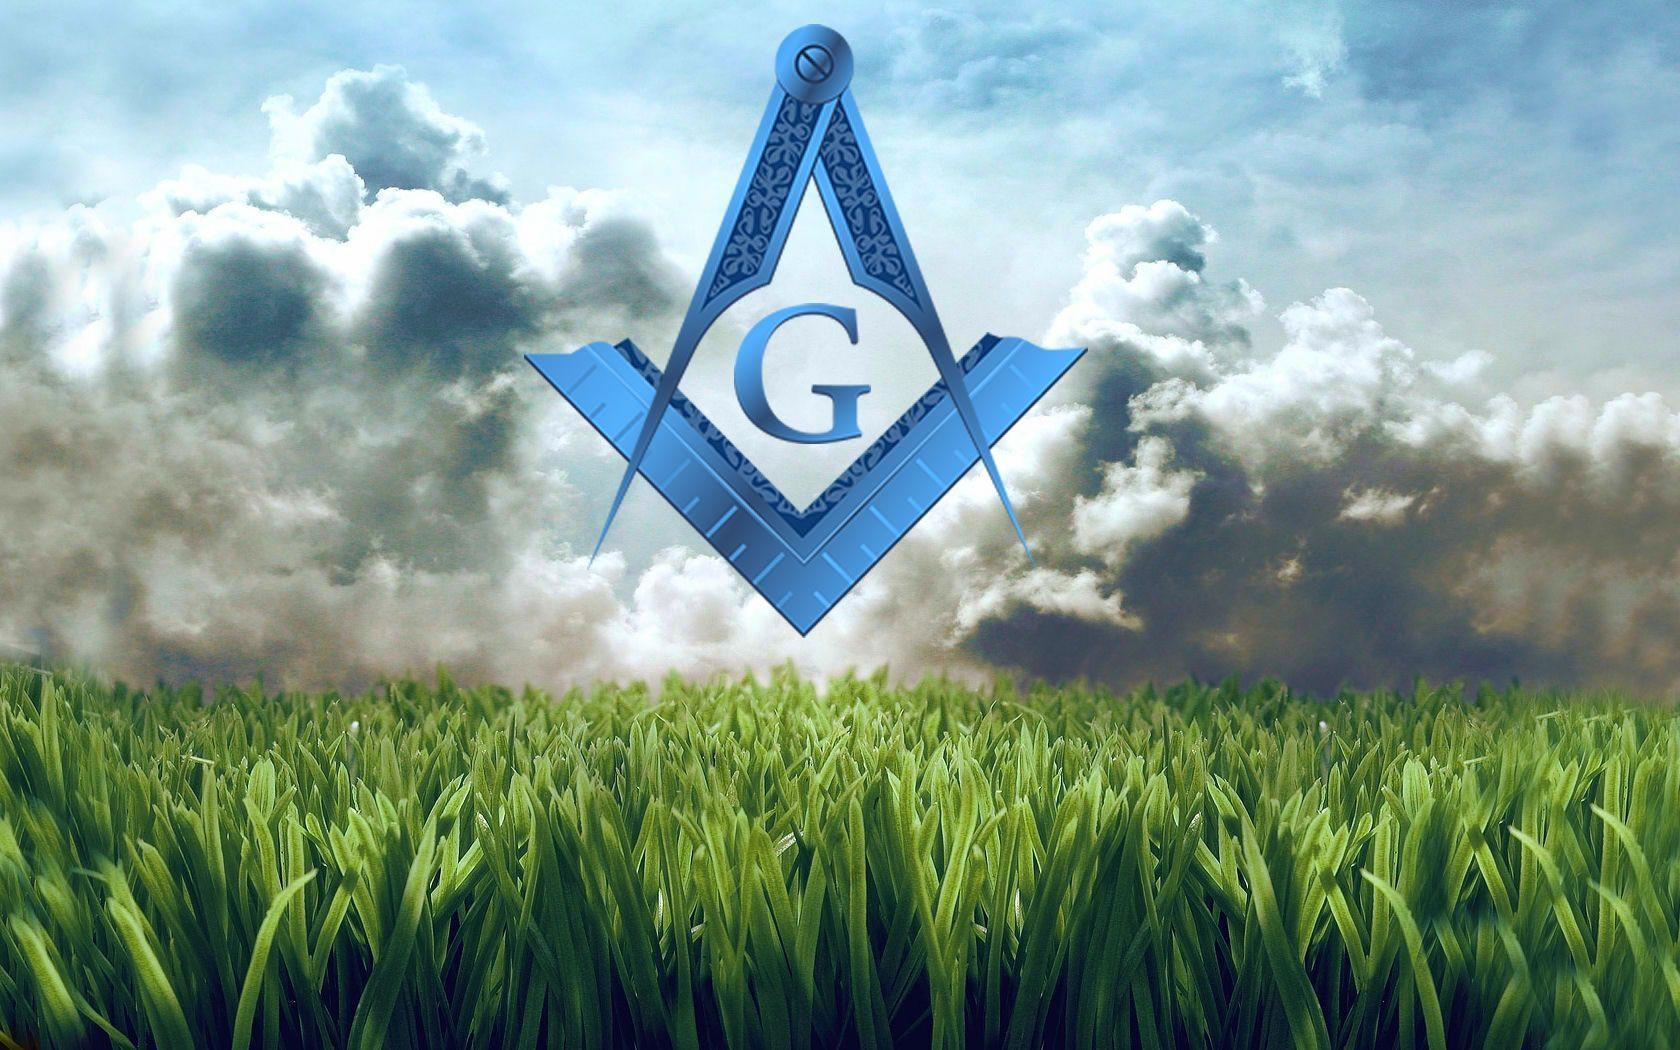 Wallpapers For > Freemason Wallpaper Iphone